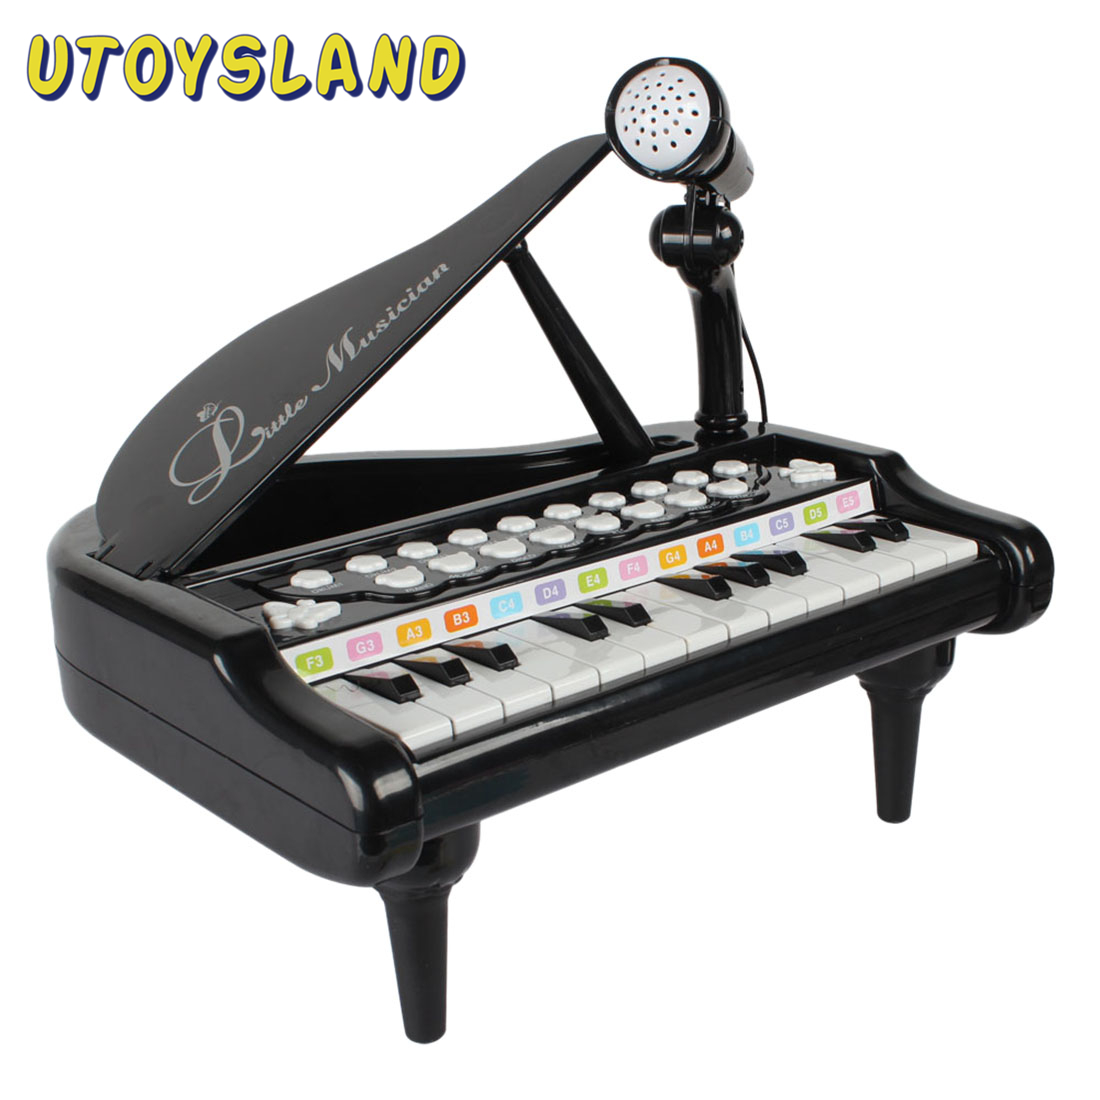 Kids 24 Keys Piano Mini Music Gift Children Musical Instrument Playing Toy Set With Microphone For Children Gifts - Black Pink